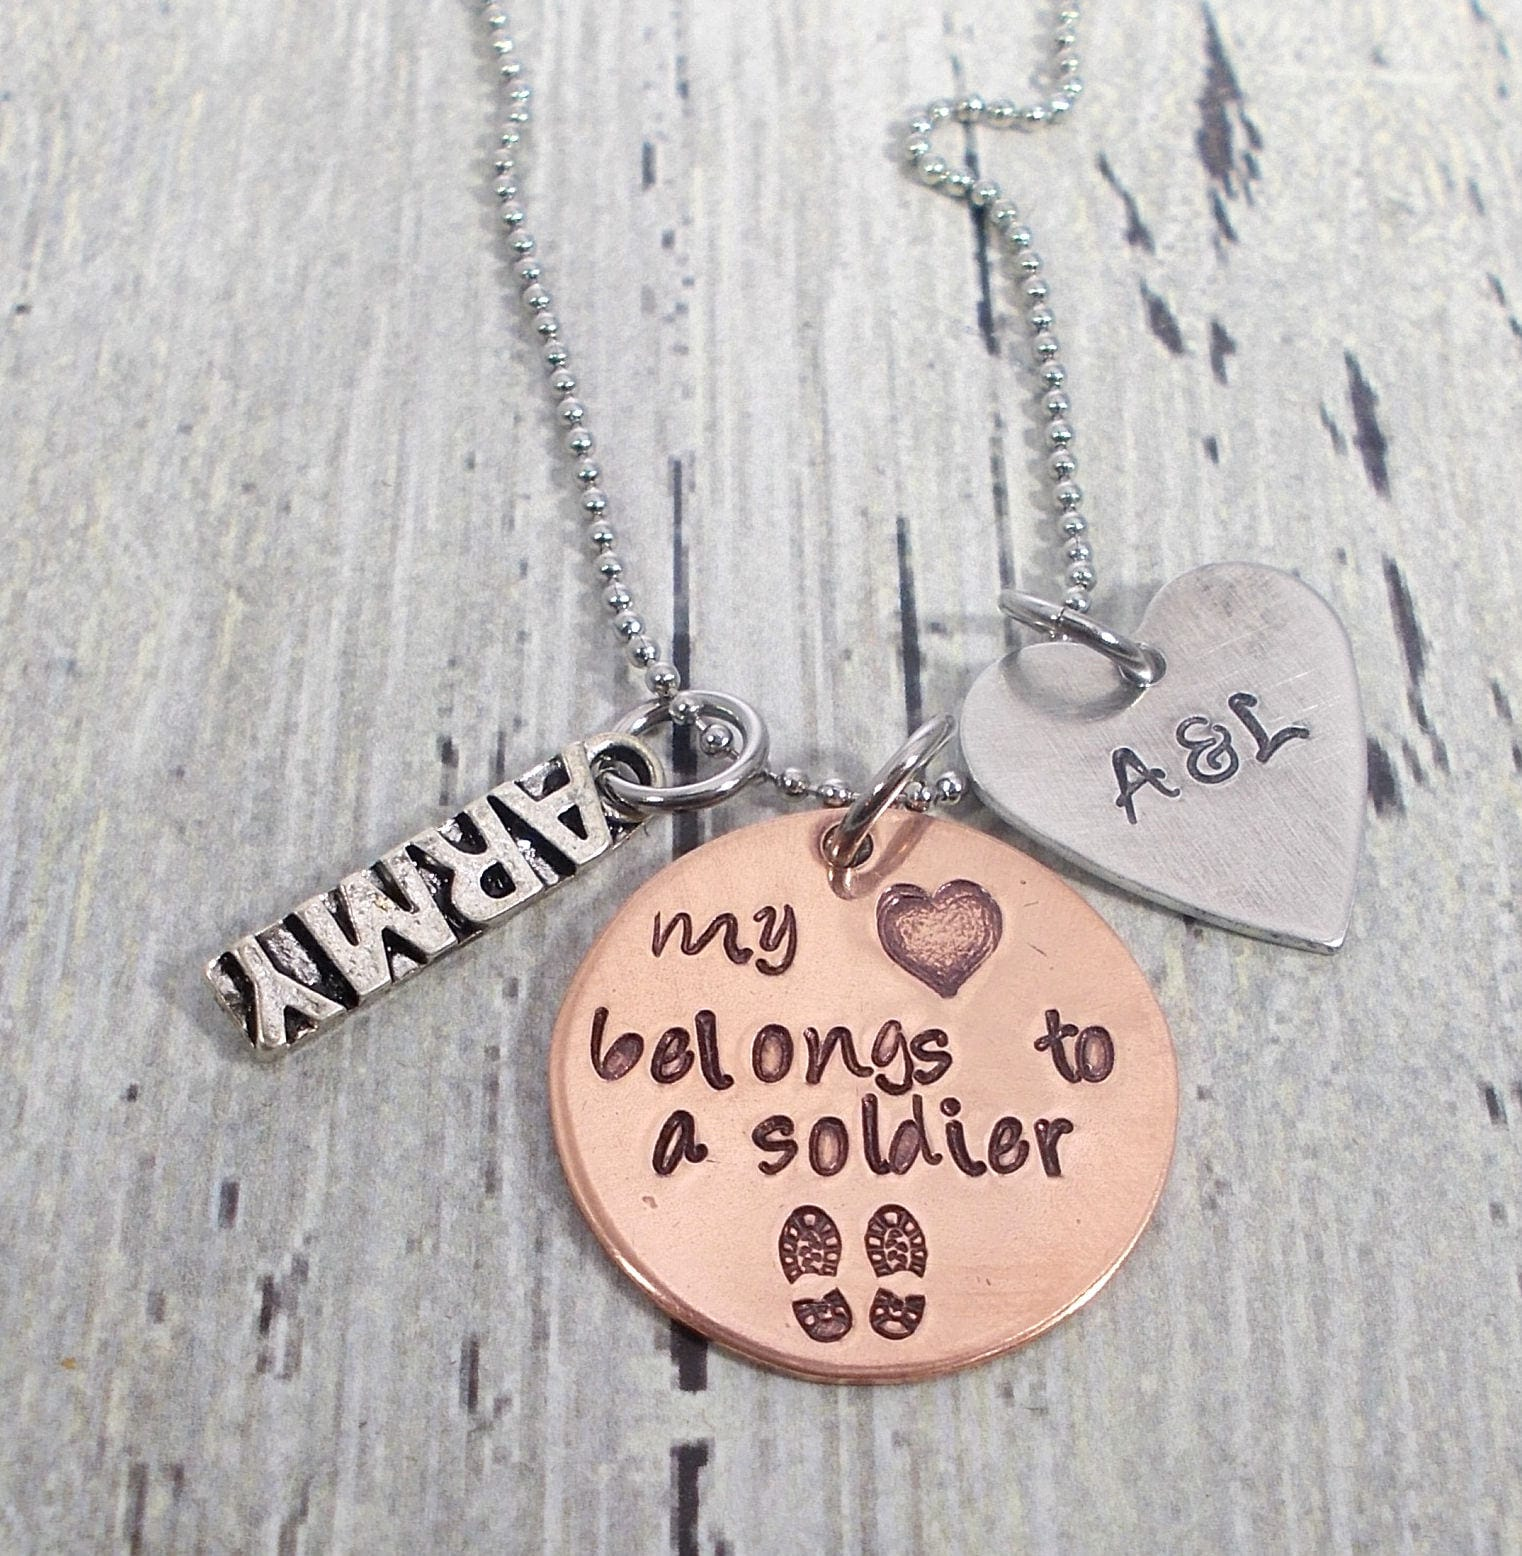 set gift boyfriend southern deer girlfriend necklaces and doe promise from his heart jewelry custom necklace head engraved hers love in buck pendant item hunting